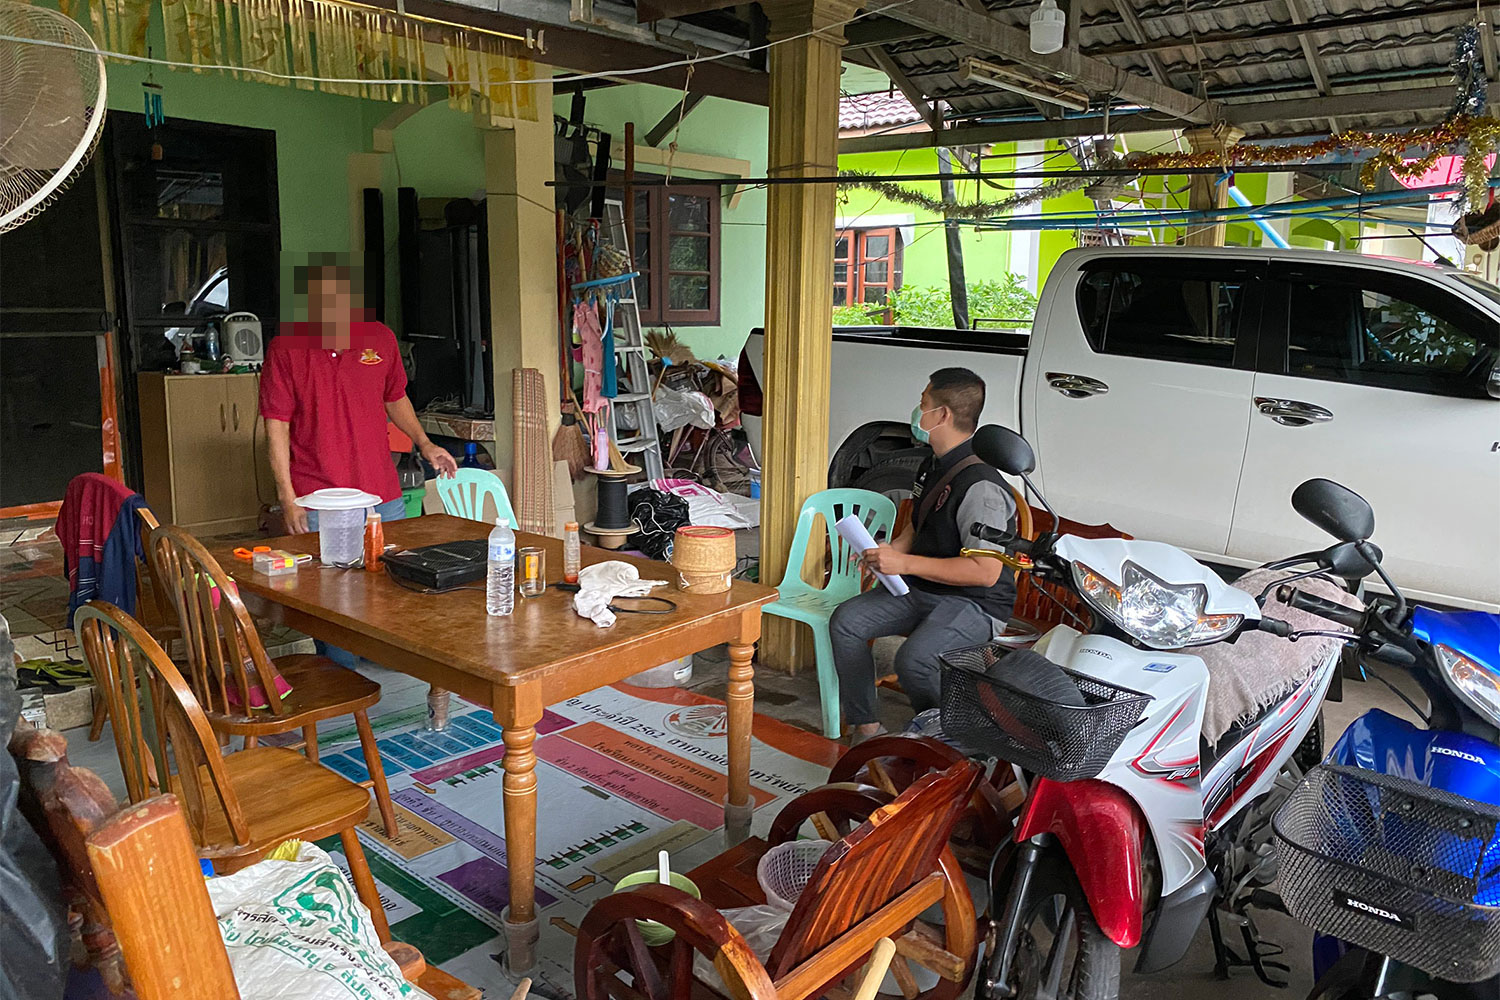 A police officer serves an arrest warrant on the accused teacher at a house in Muang district of Nakhon Phanom province on Friday. (Photo: Pattanapong Sripiachai)